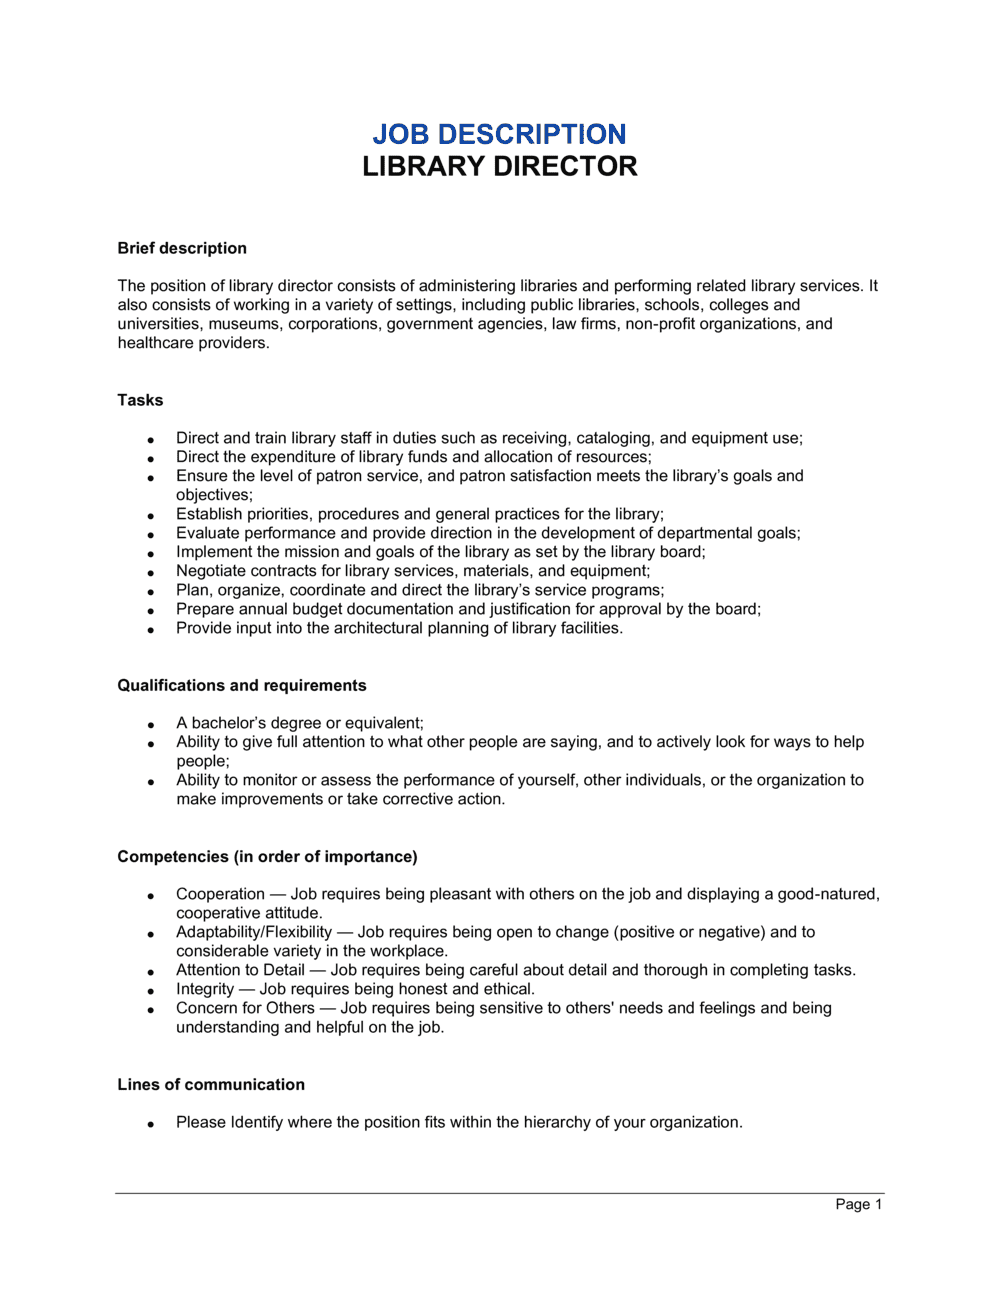 Business-in-a-Box's Library Director Job Description Template